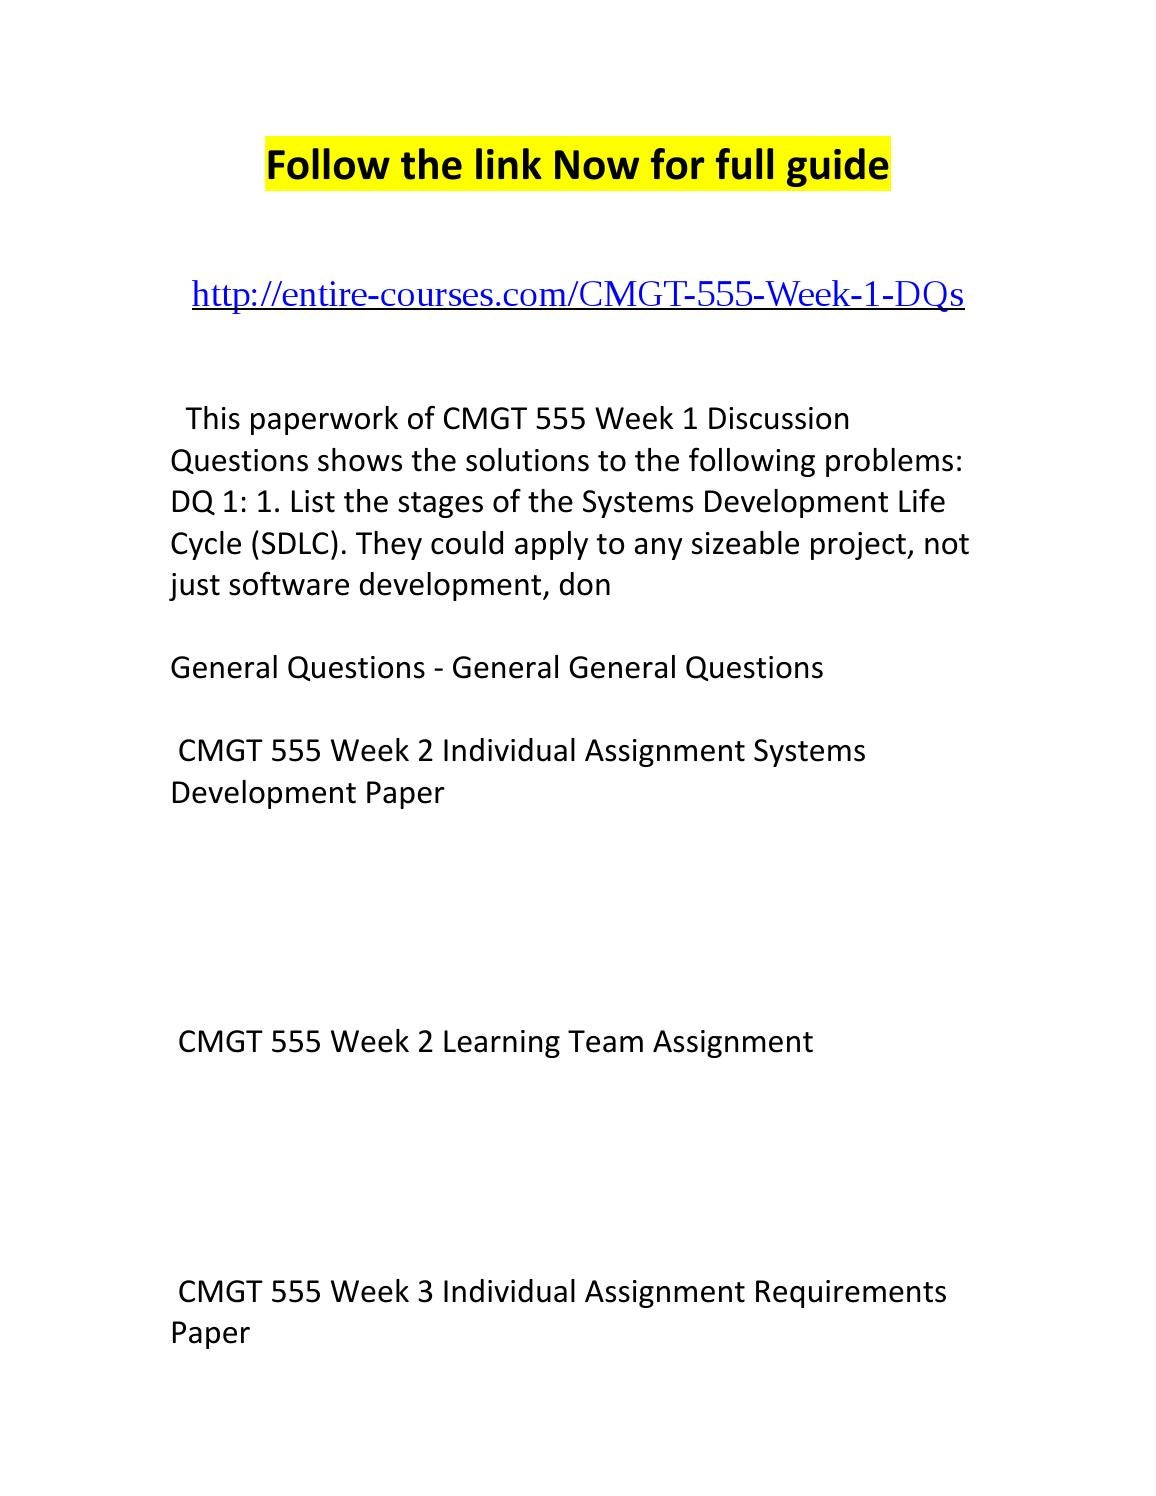 COM 537 Week 3 Individual Assignment Internal and External Stakeholders